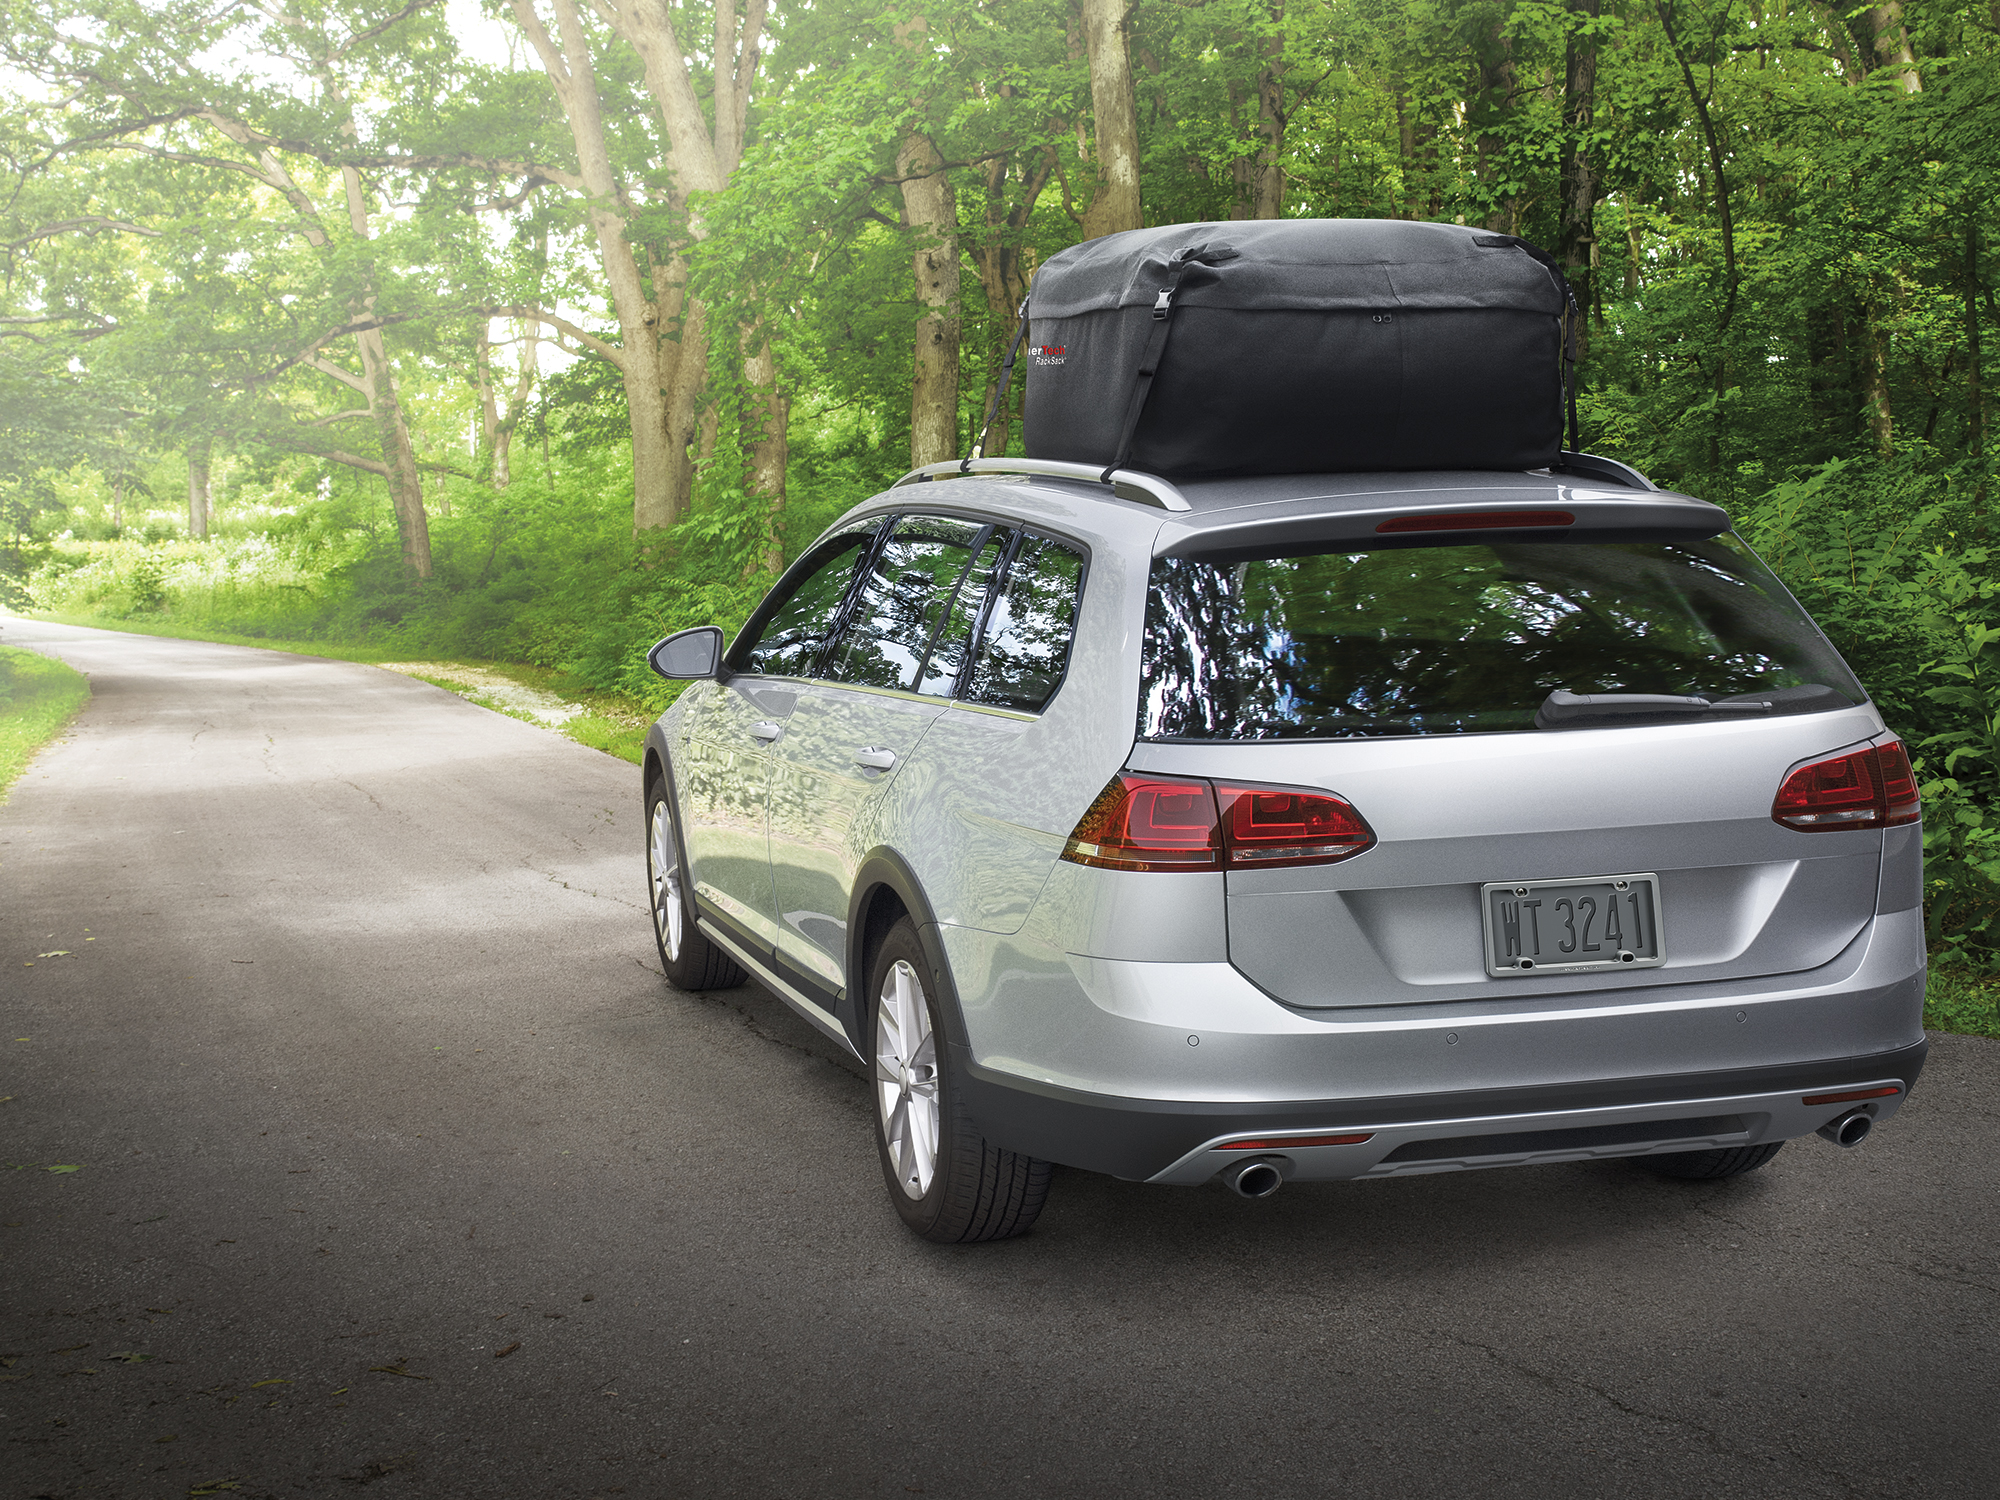 Road Tripping? Here's how to maximize your vehicle's storage space